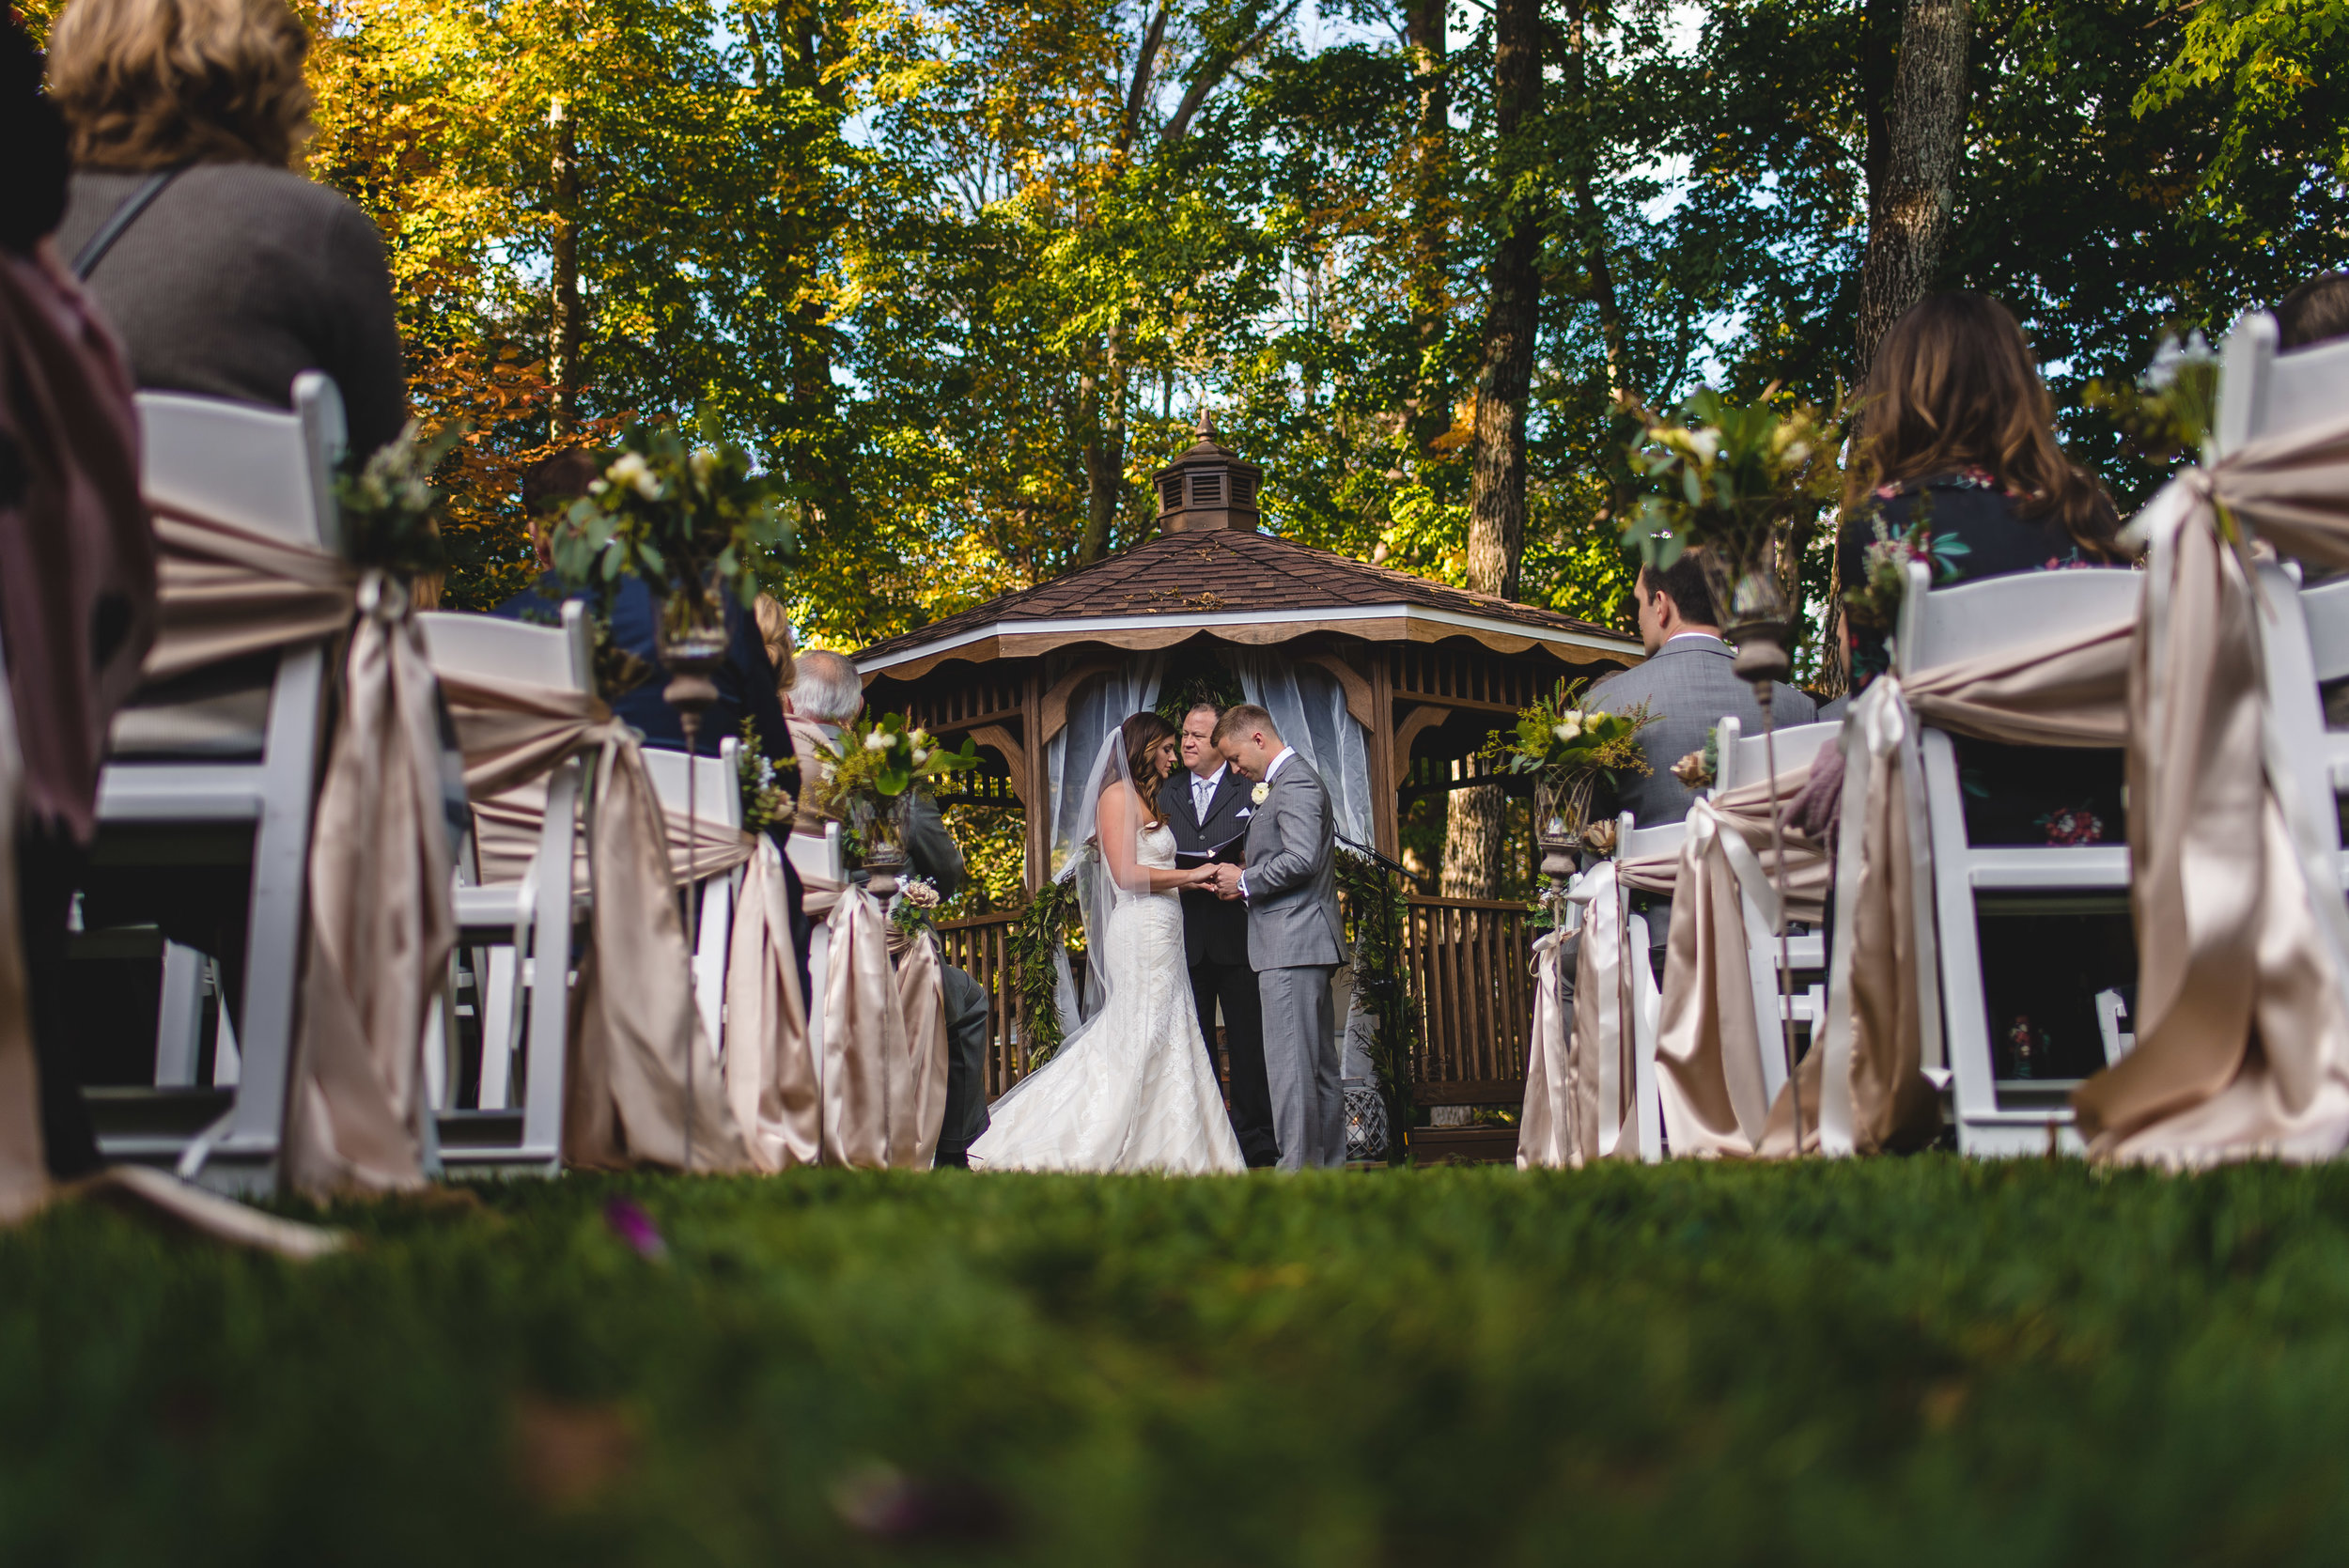 Backyard Wedding Ceremony in Dayton - Studio 22 Photography